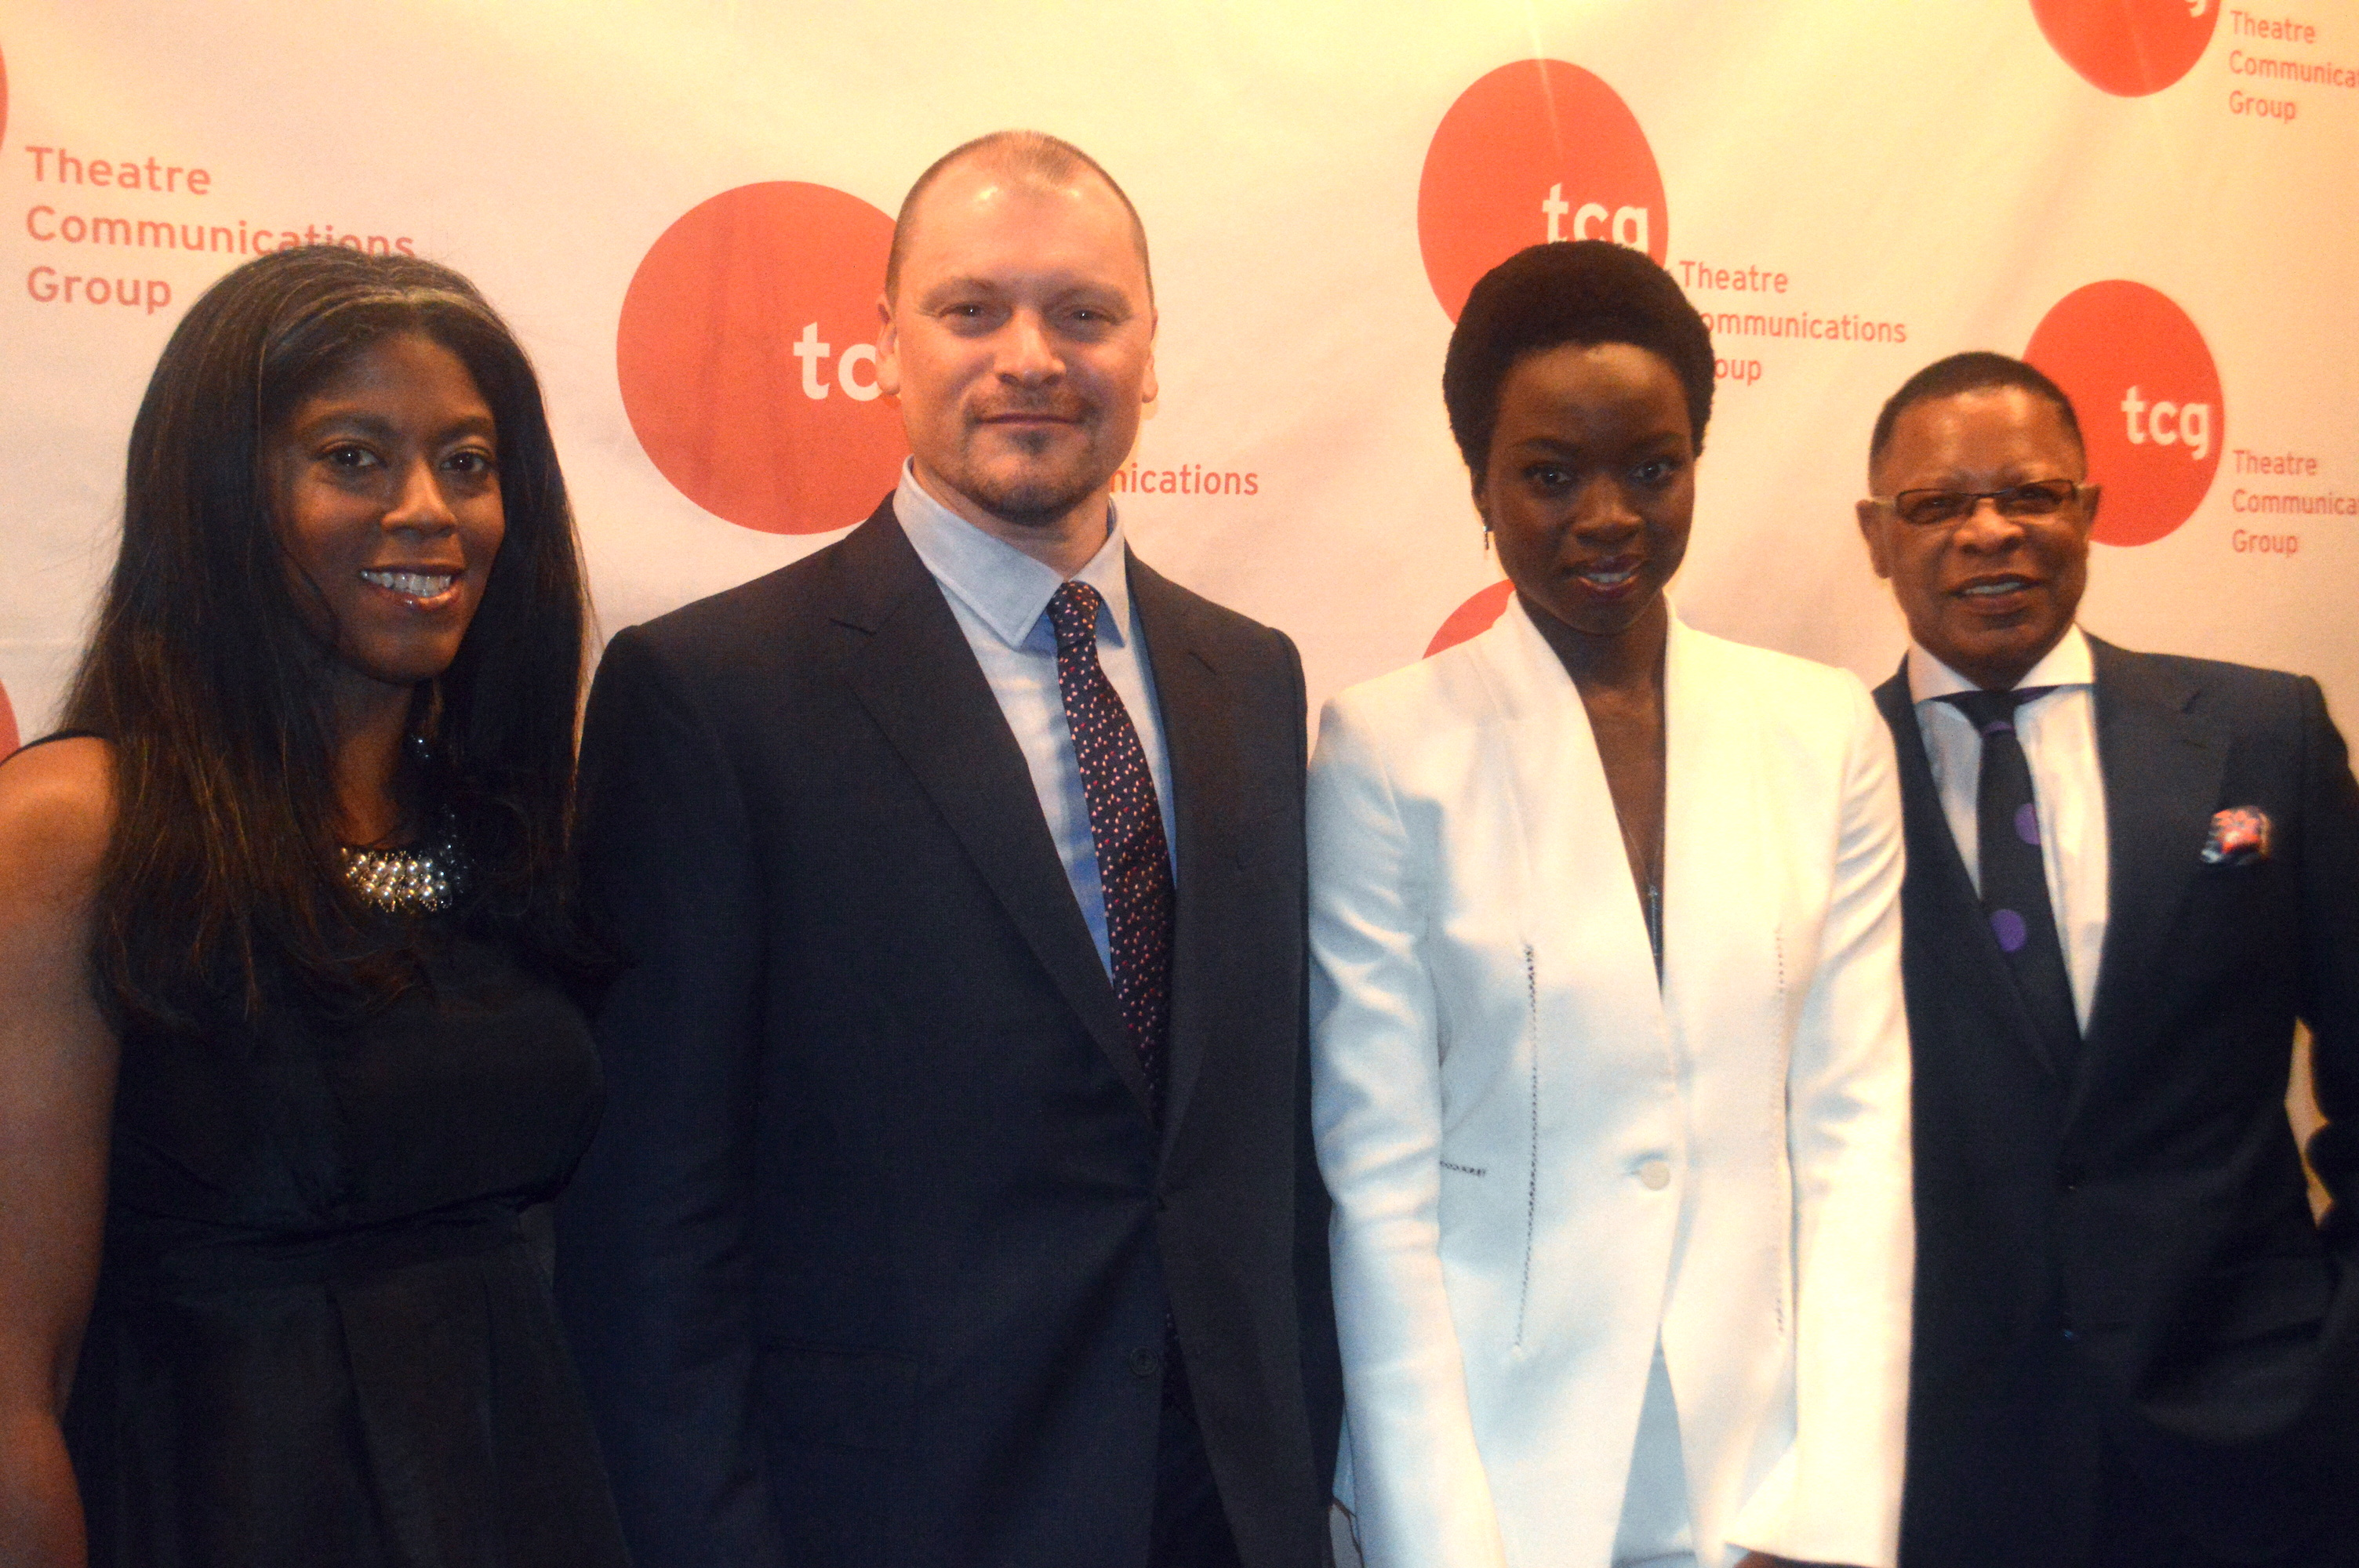 Eclipsed Playwright Danai Gurira and More Honored by TCG Group